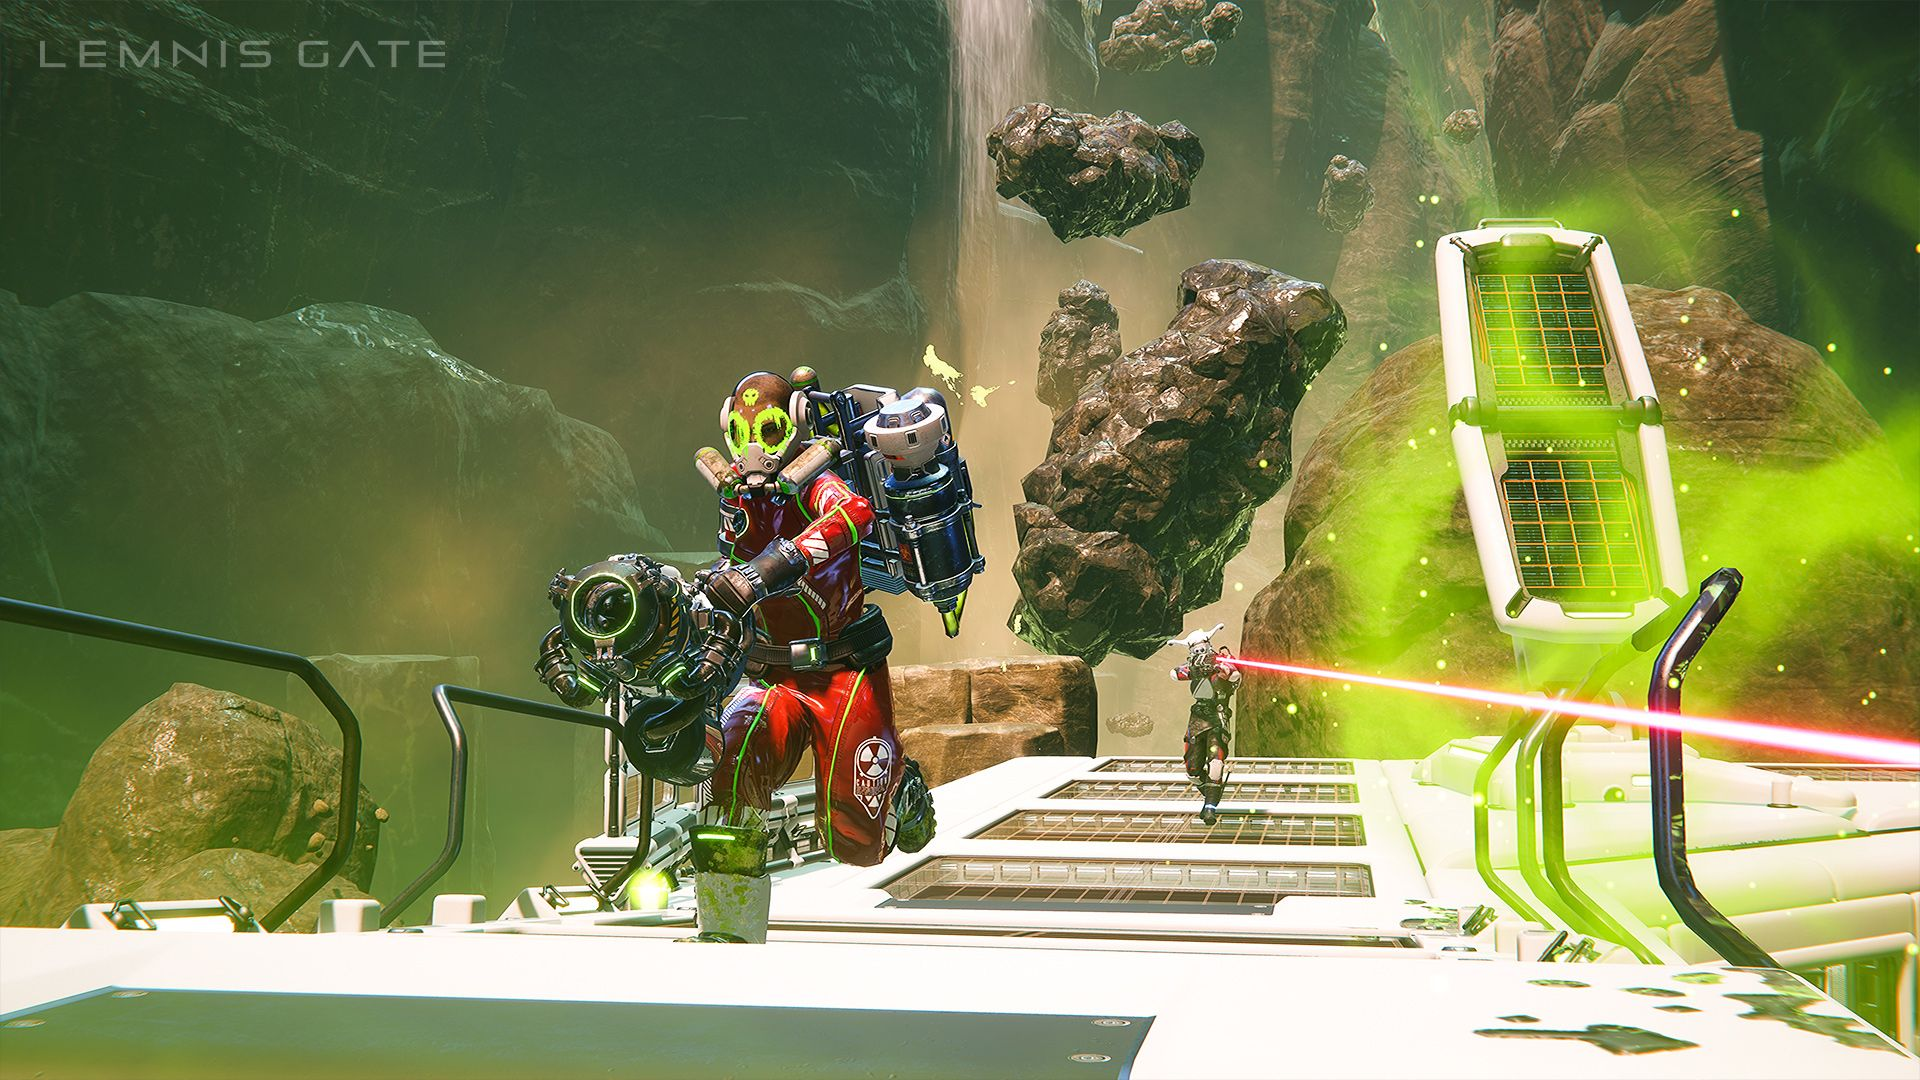 A screenshot of Toxin who can poison any area in Lemnis Gate, and is just one of the seven operatives